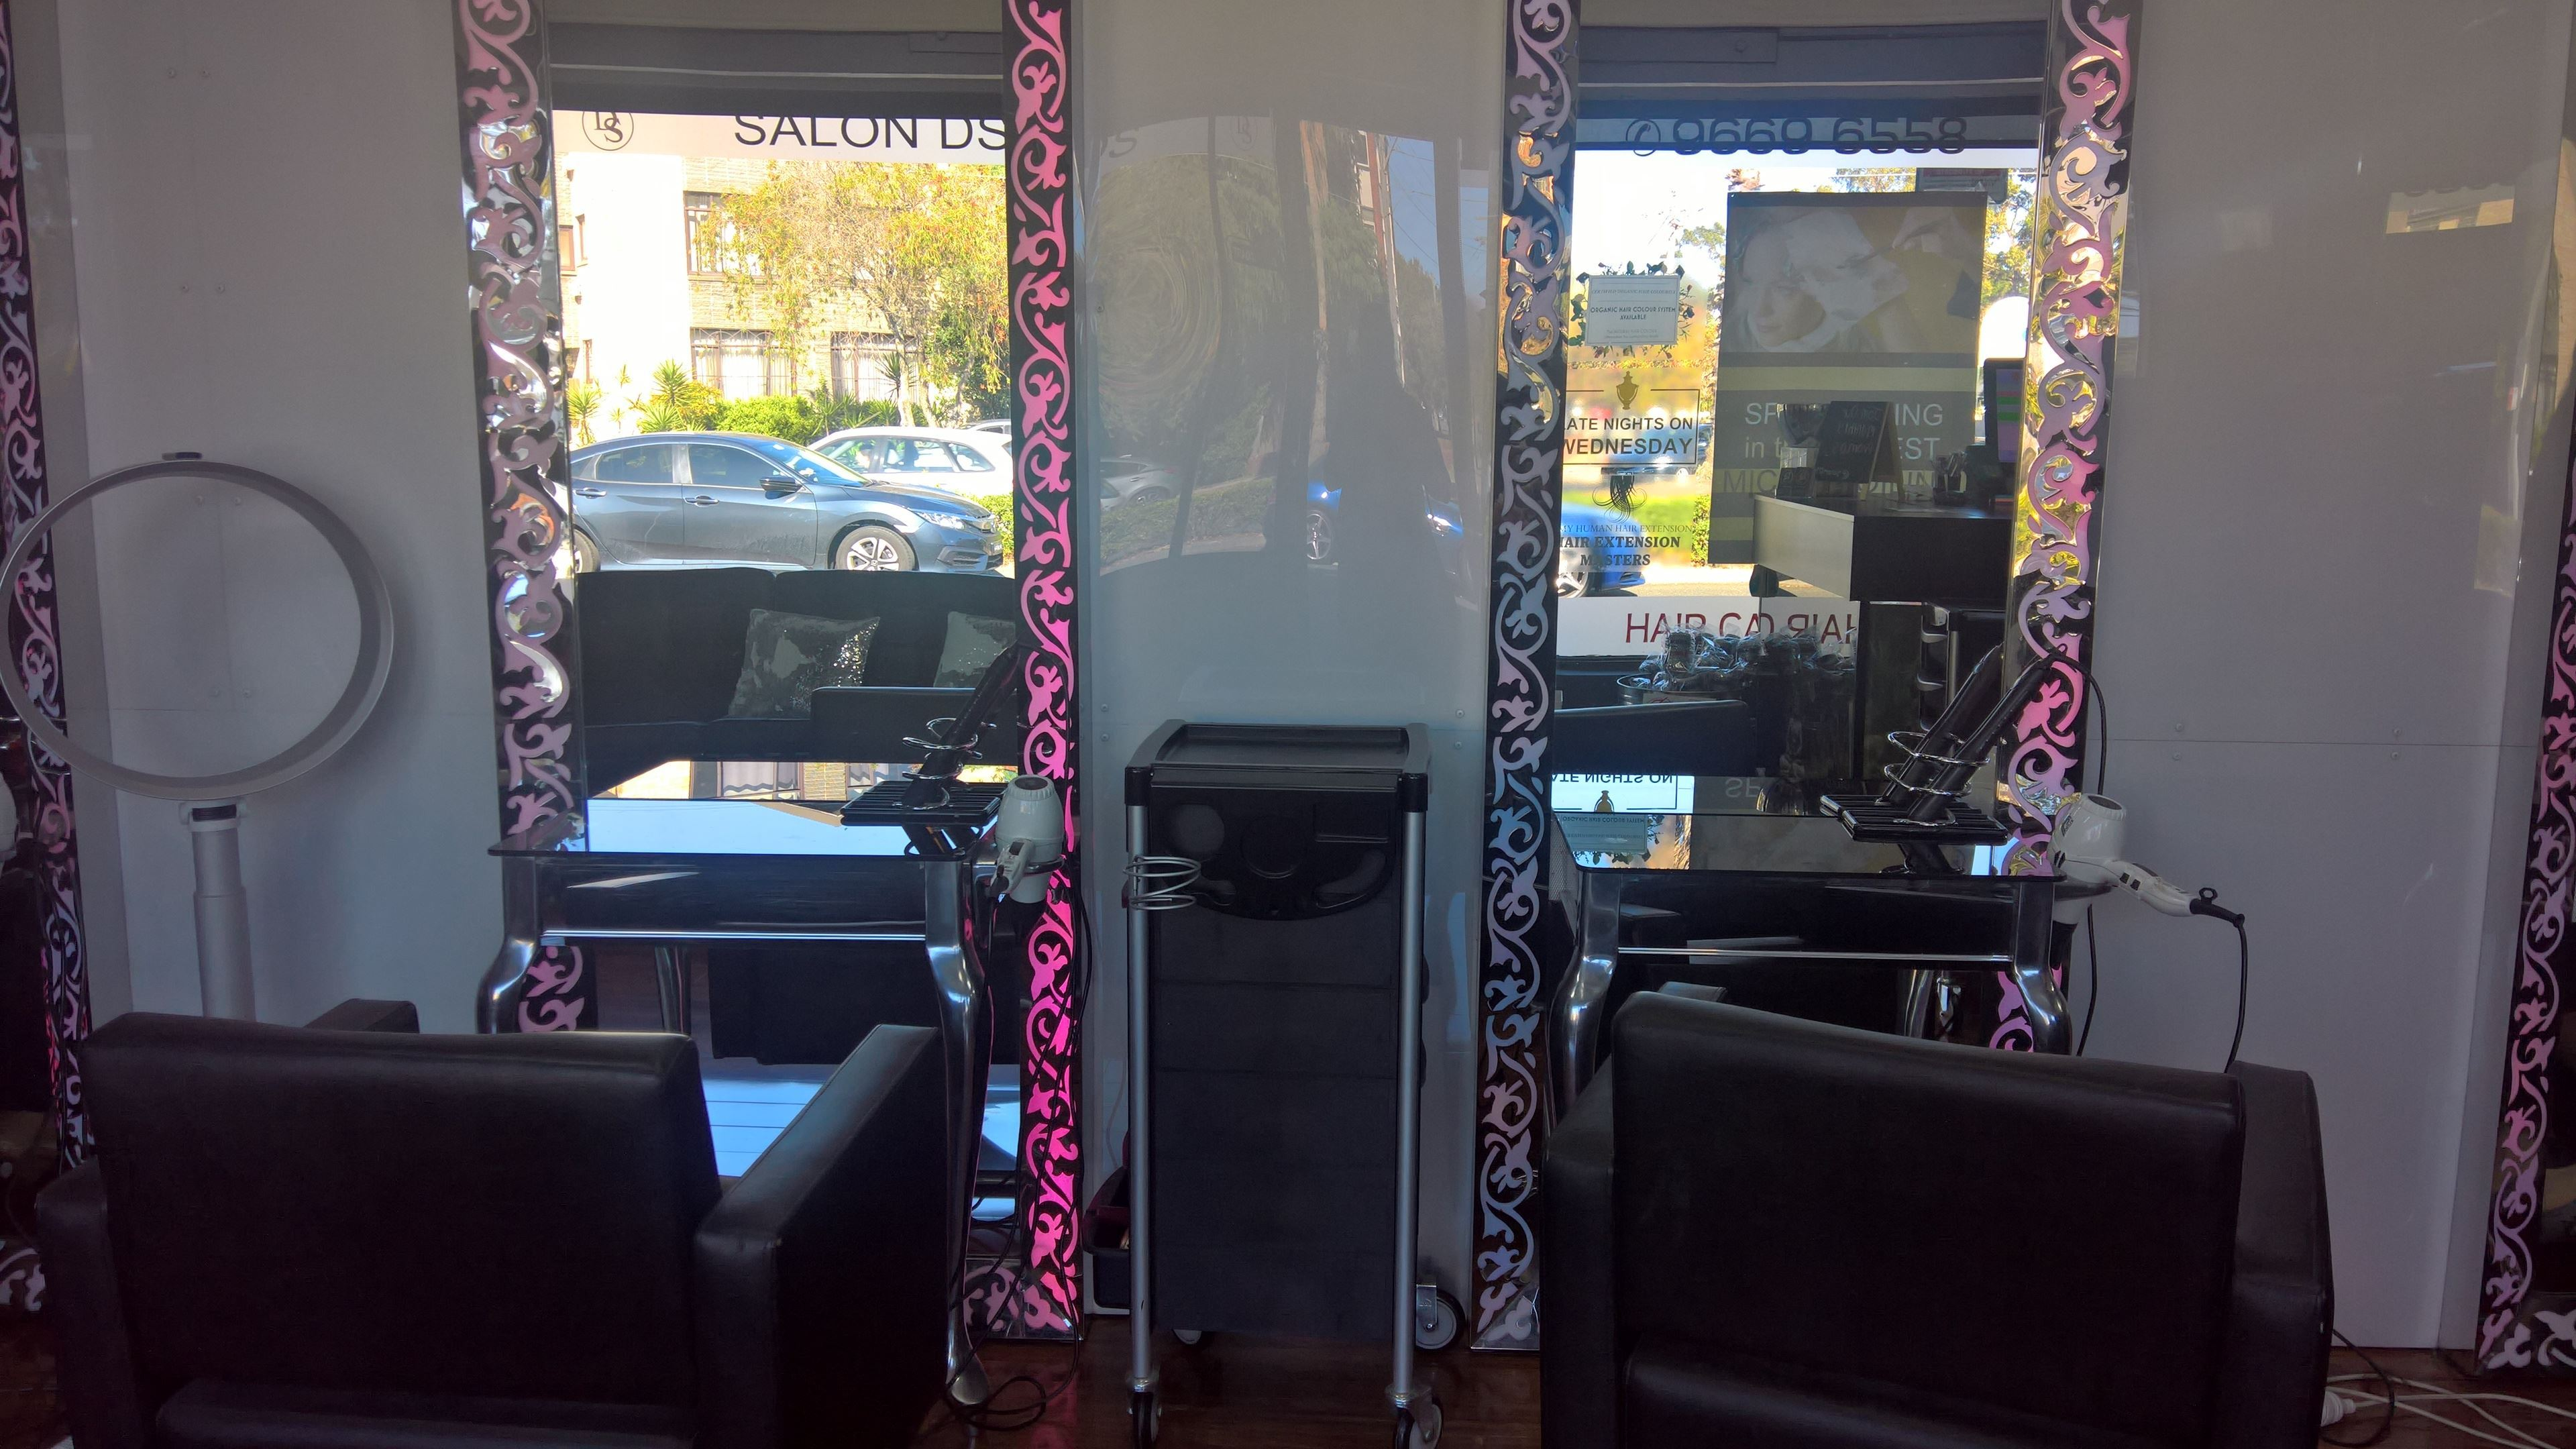 Salon Ds Hair Care Specialist Hair Extensions Hairdresser